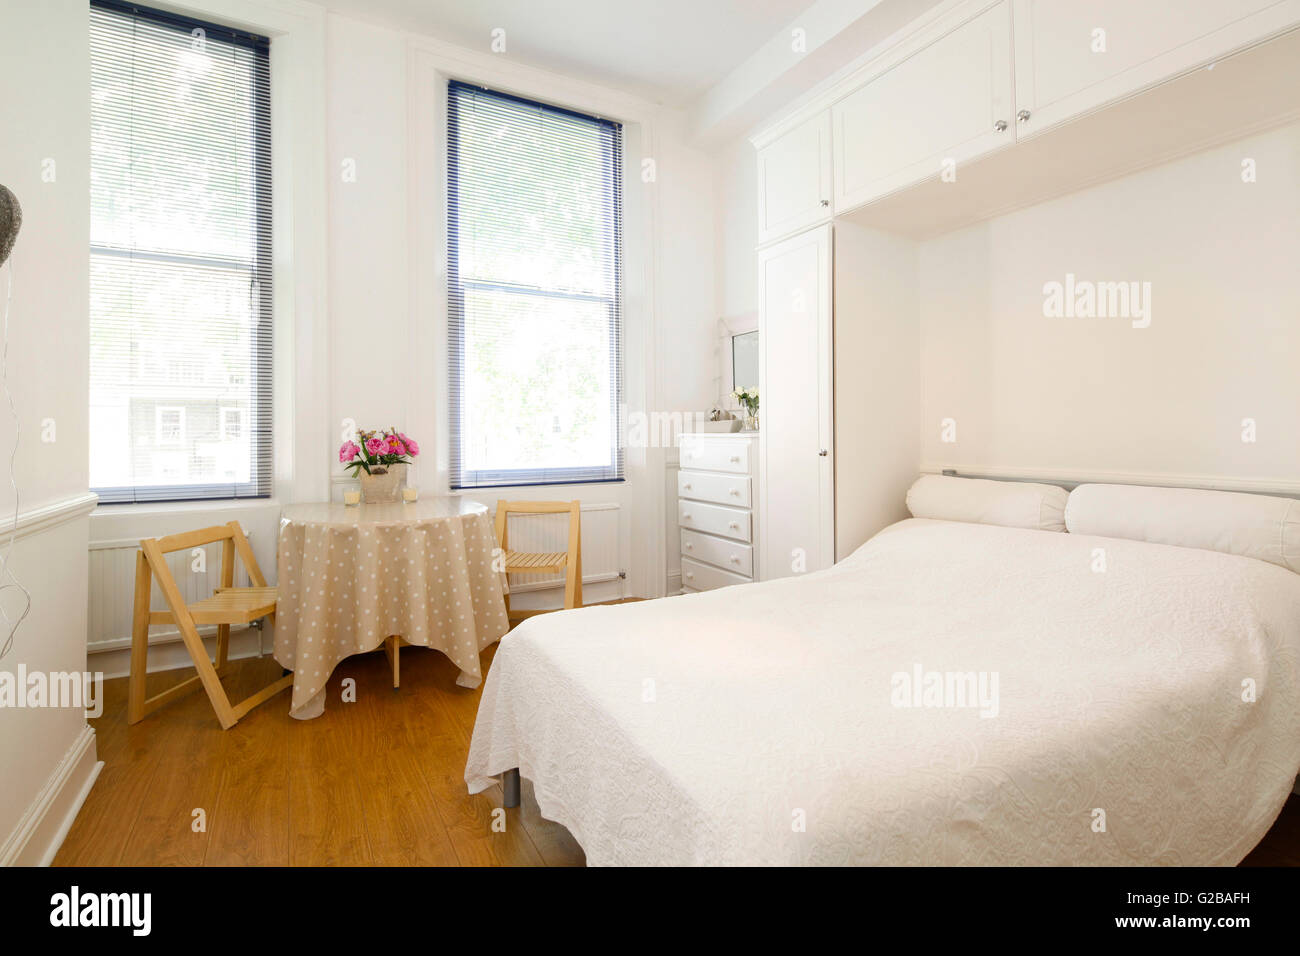 Harrington Gardens. View Of A Bedroom With Retro, Vintage Decor And  Furniture. White Linen On The Bed. Minimal Decoration.